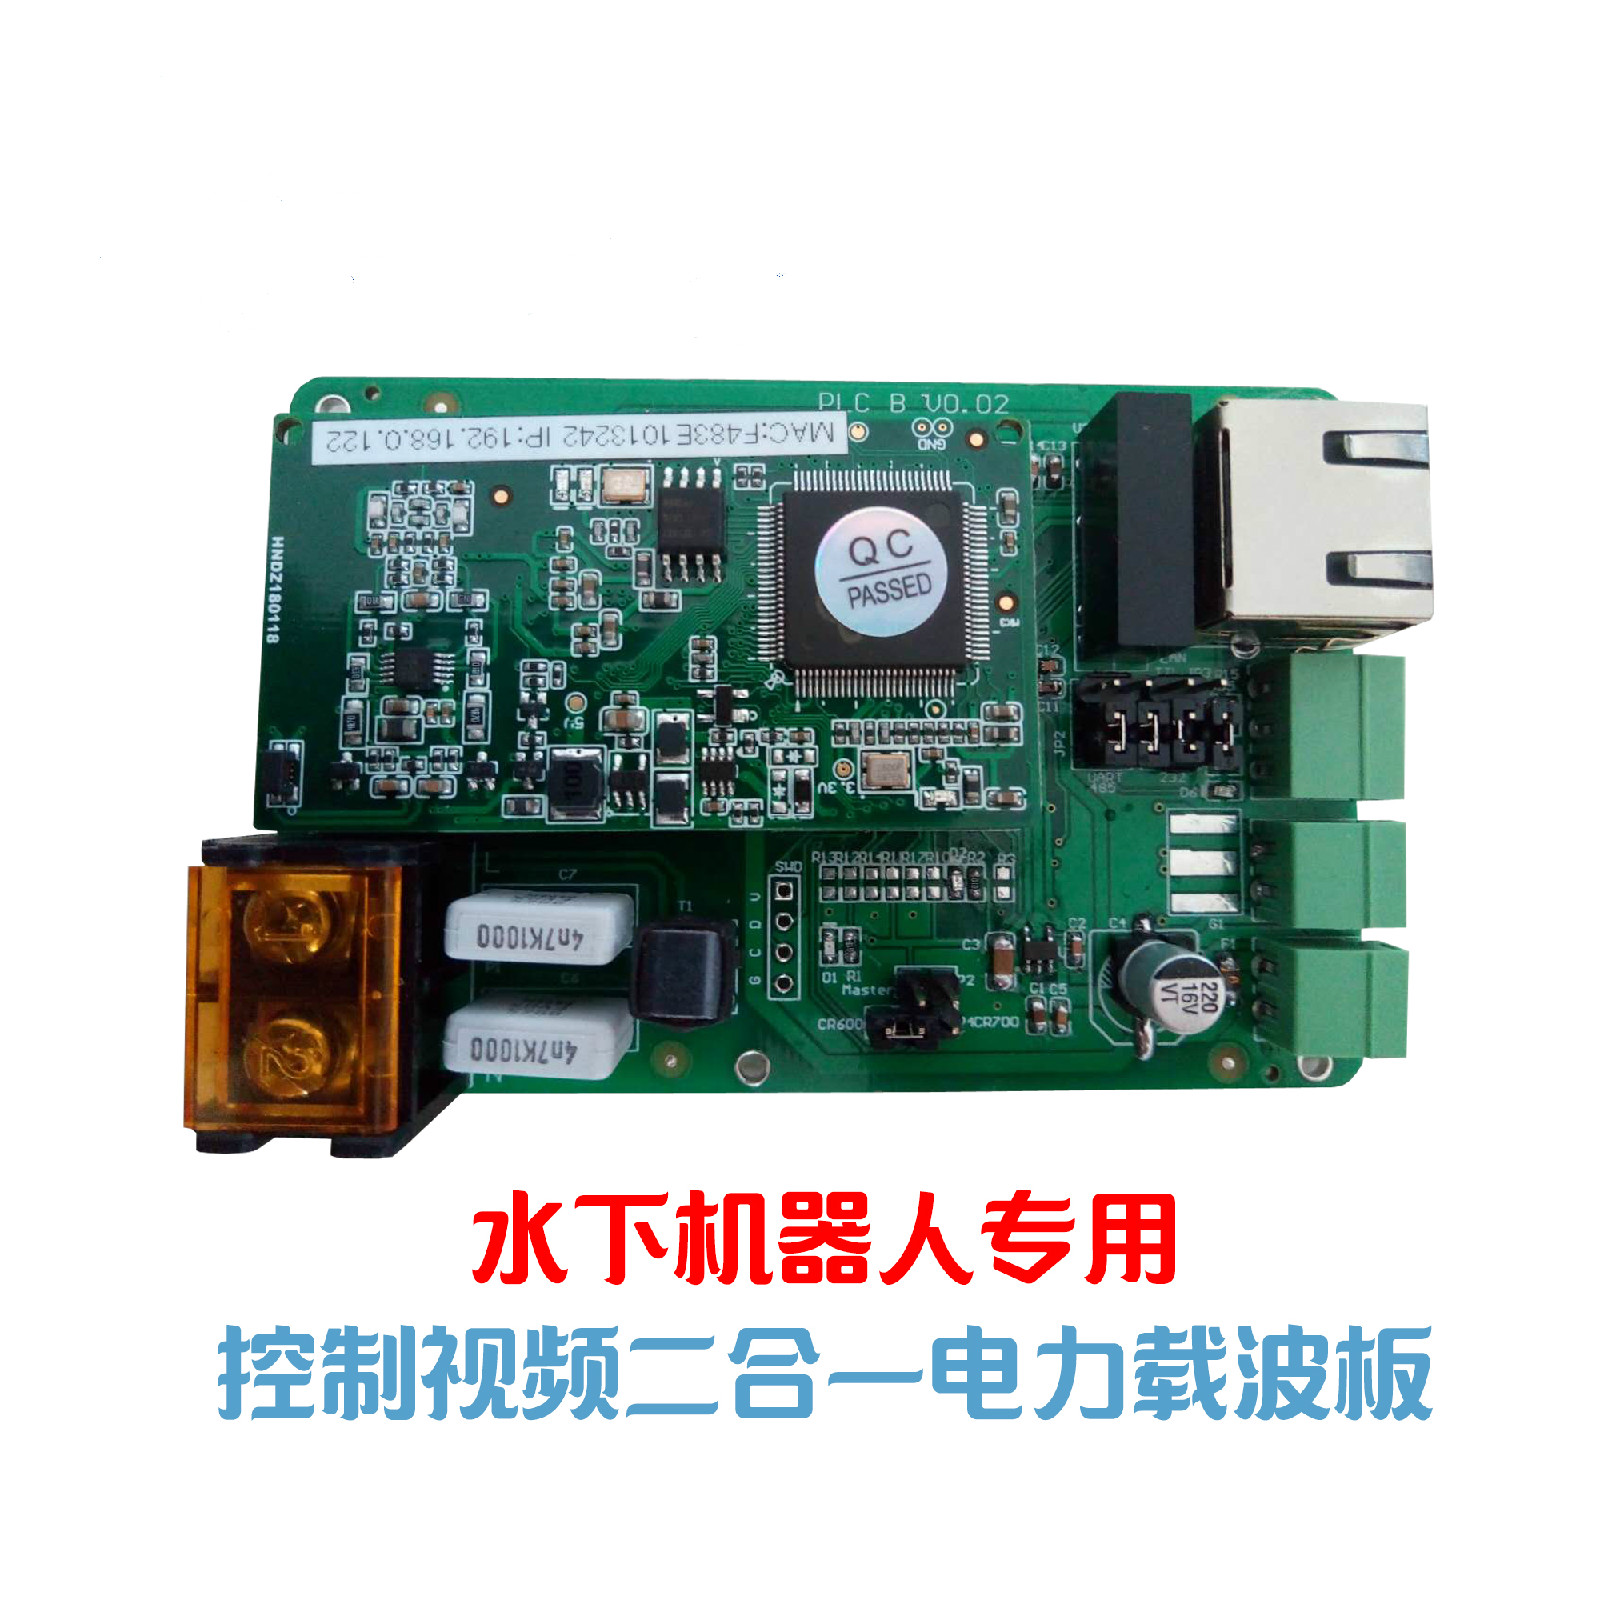 Control Video Two in One Power Carrier Board, Underwater Vehicle ROV Underwater UAV Signal TransmissionControl Video Two in One Power Carrier Board, Underwater Vehicle ROV Underwater UAV Signal Transmission